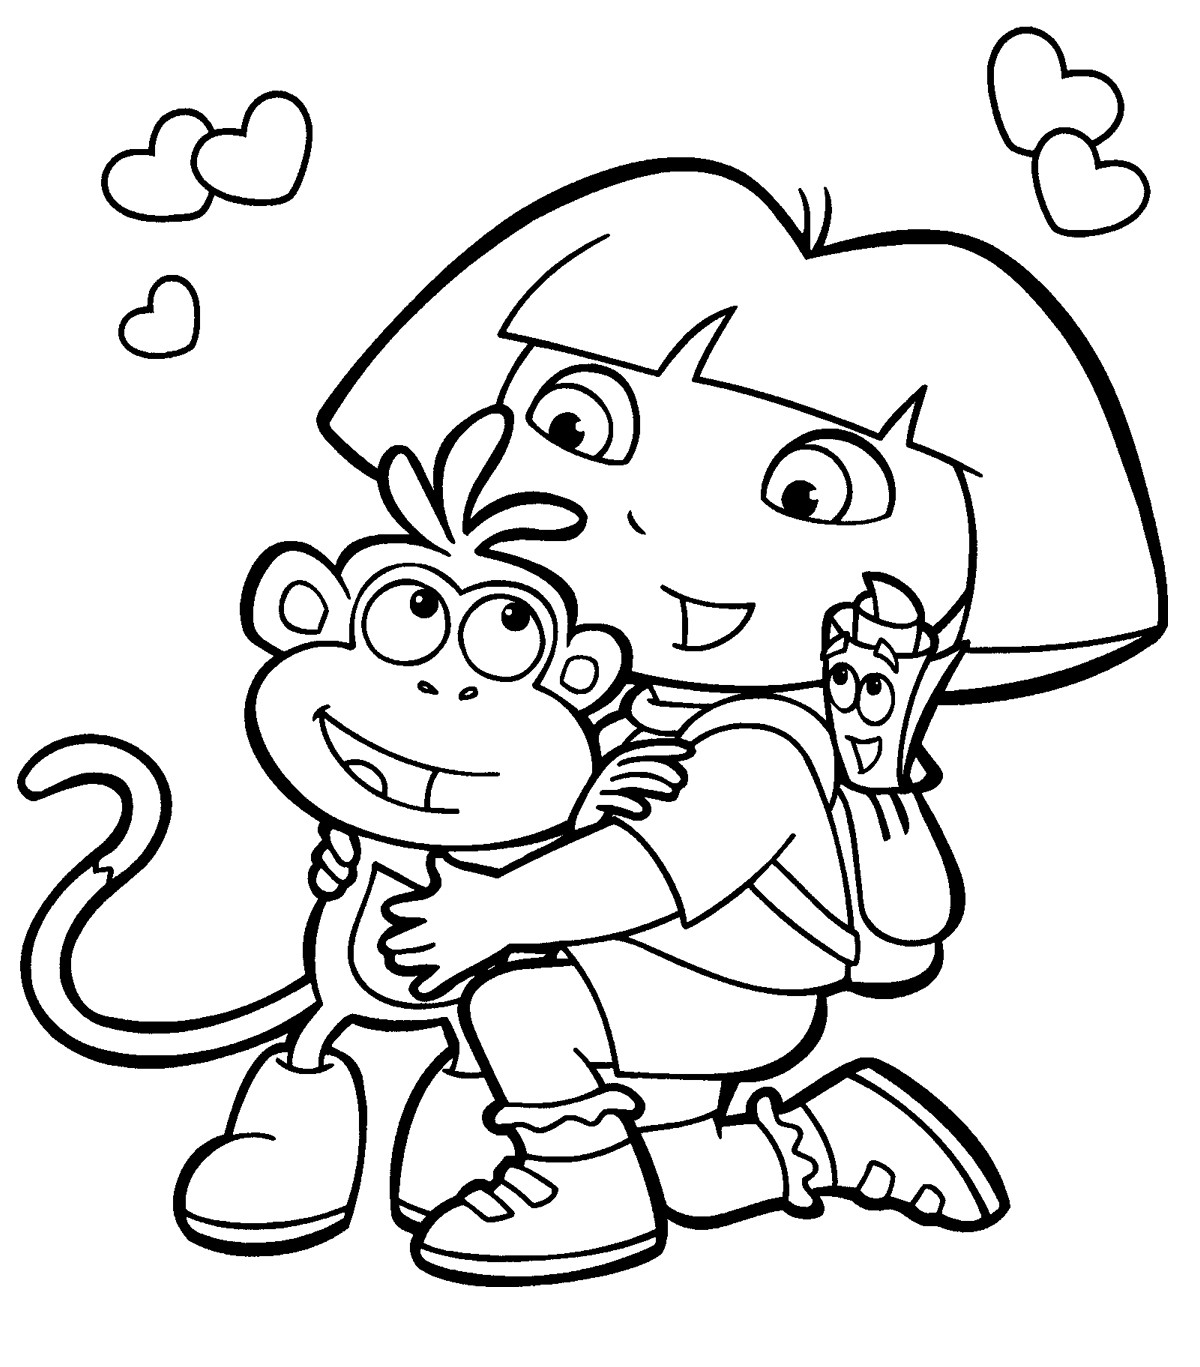 Nick Coloring Pages For Kids  Nick Jr Coloring Pages 17